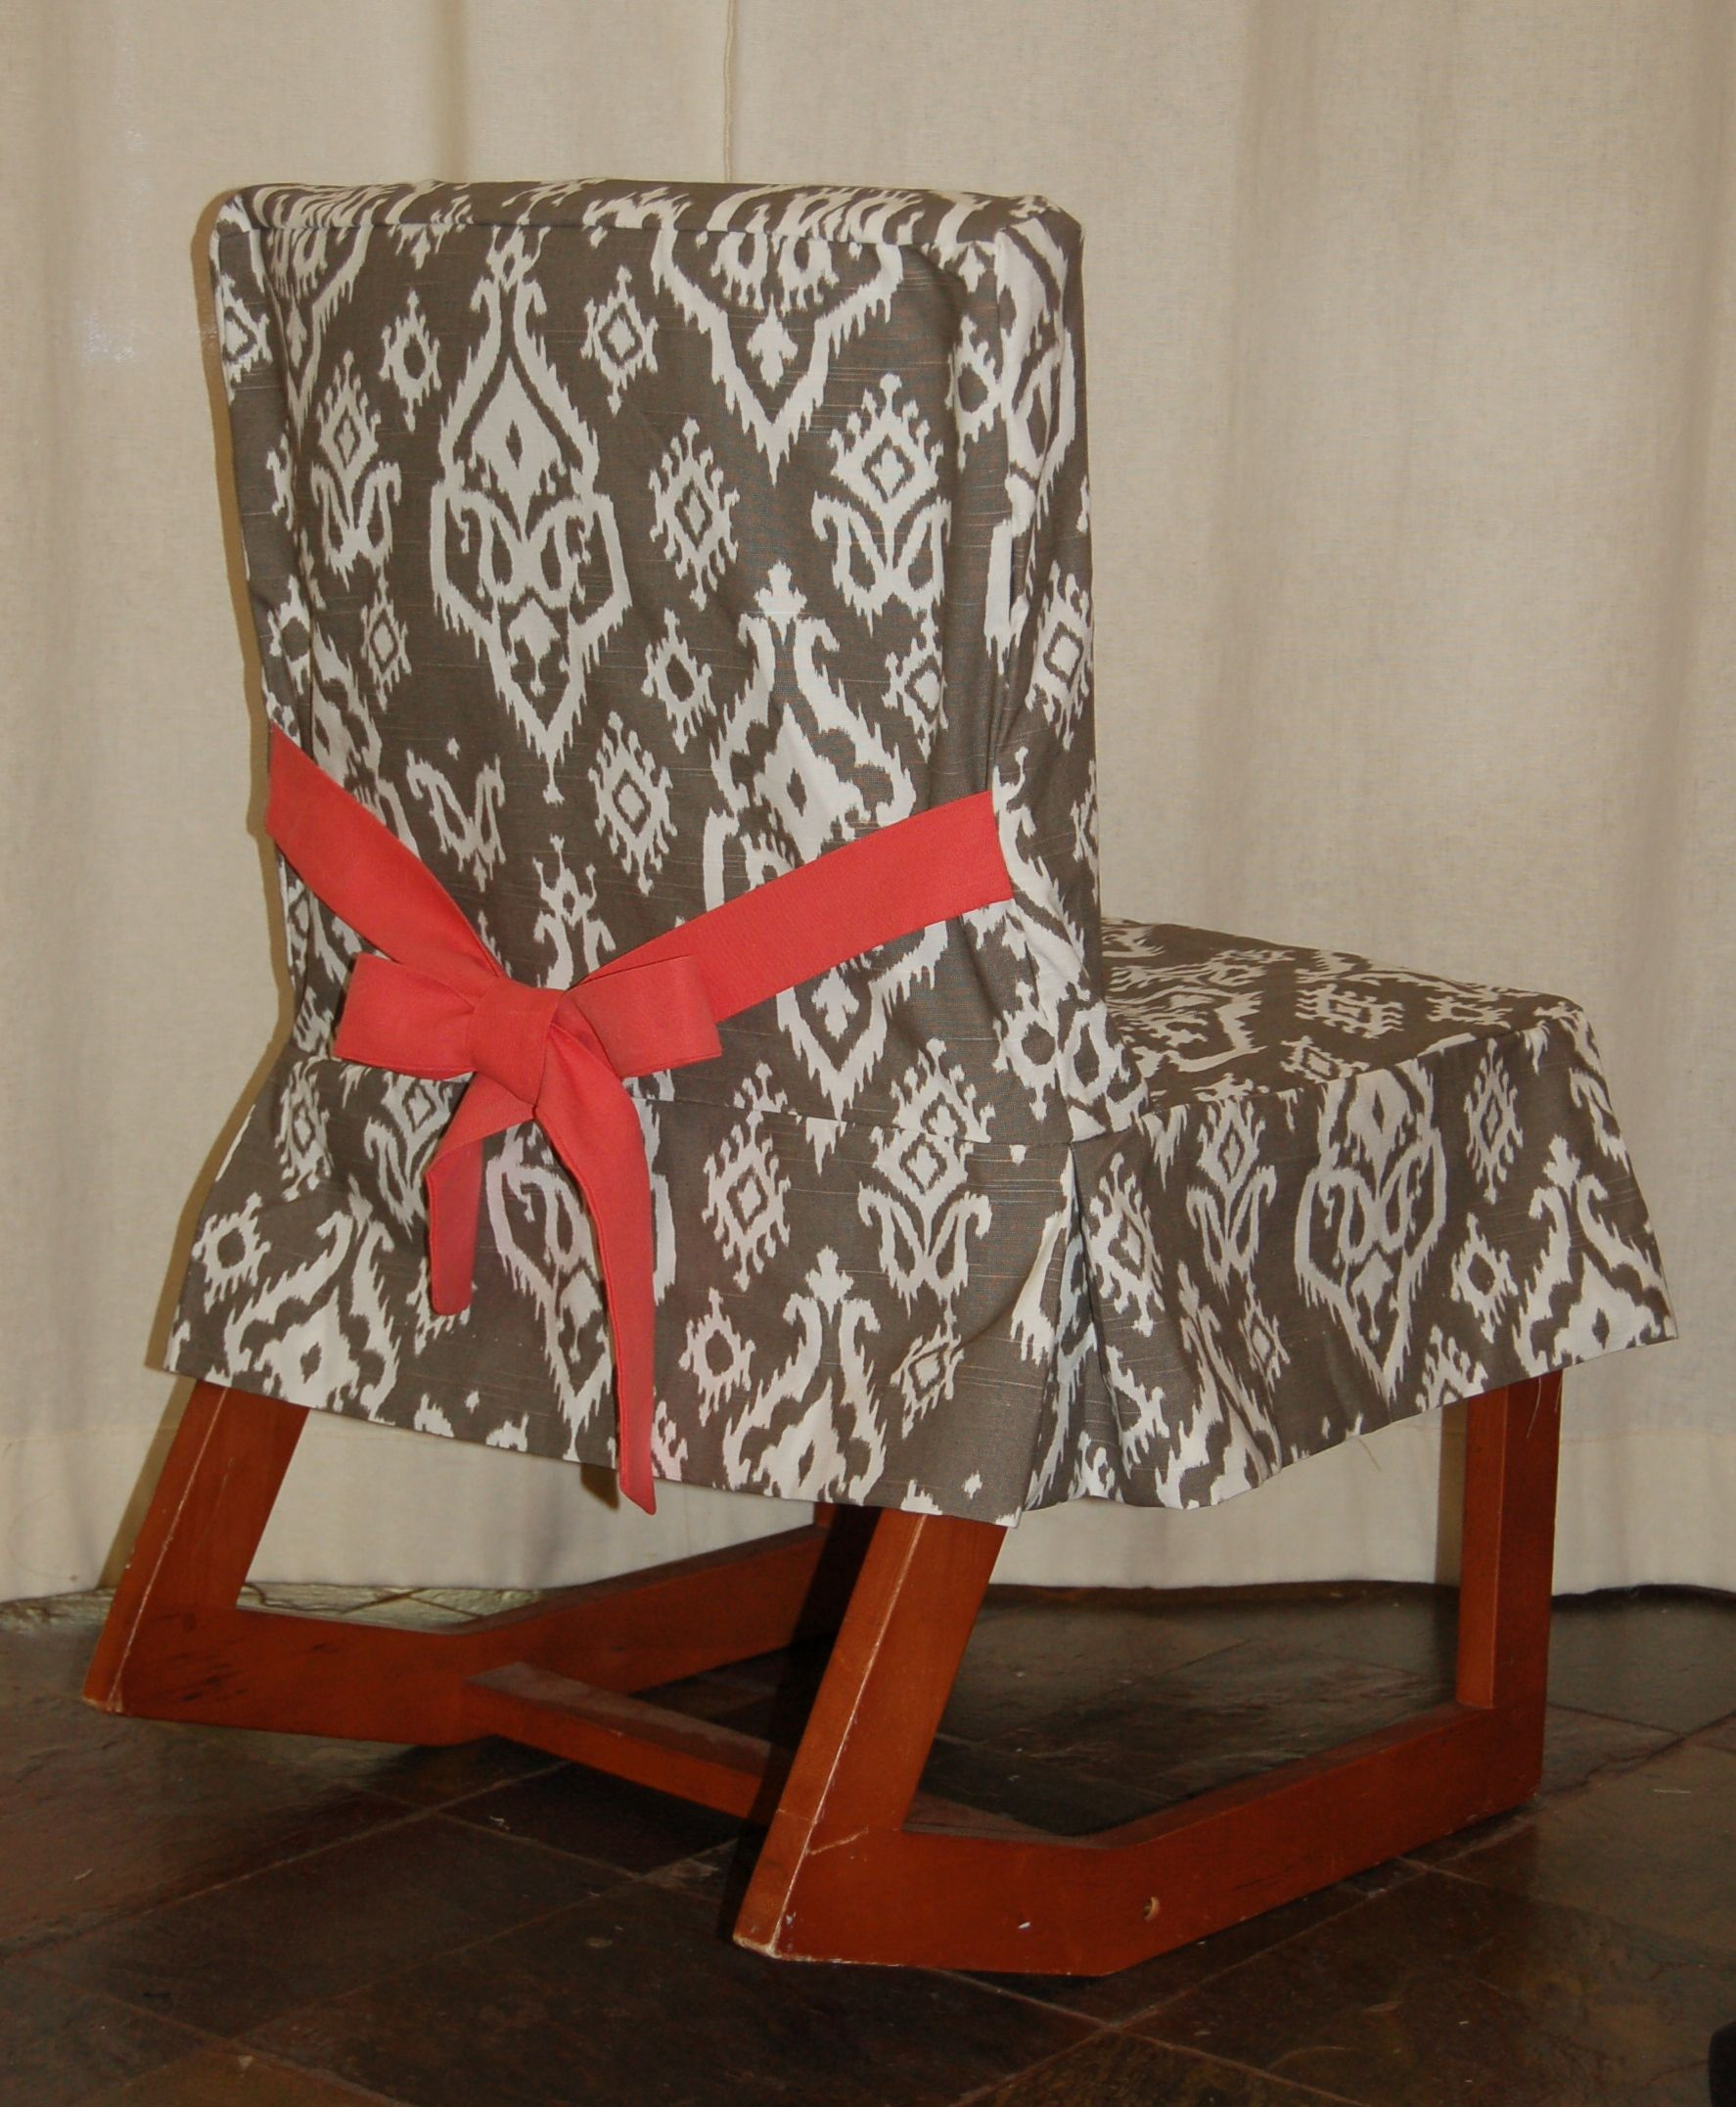 Dorm Chairs Chair Slipcover Dorm Suite Dorm Dorm Room Chair Covers